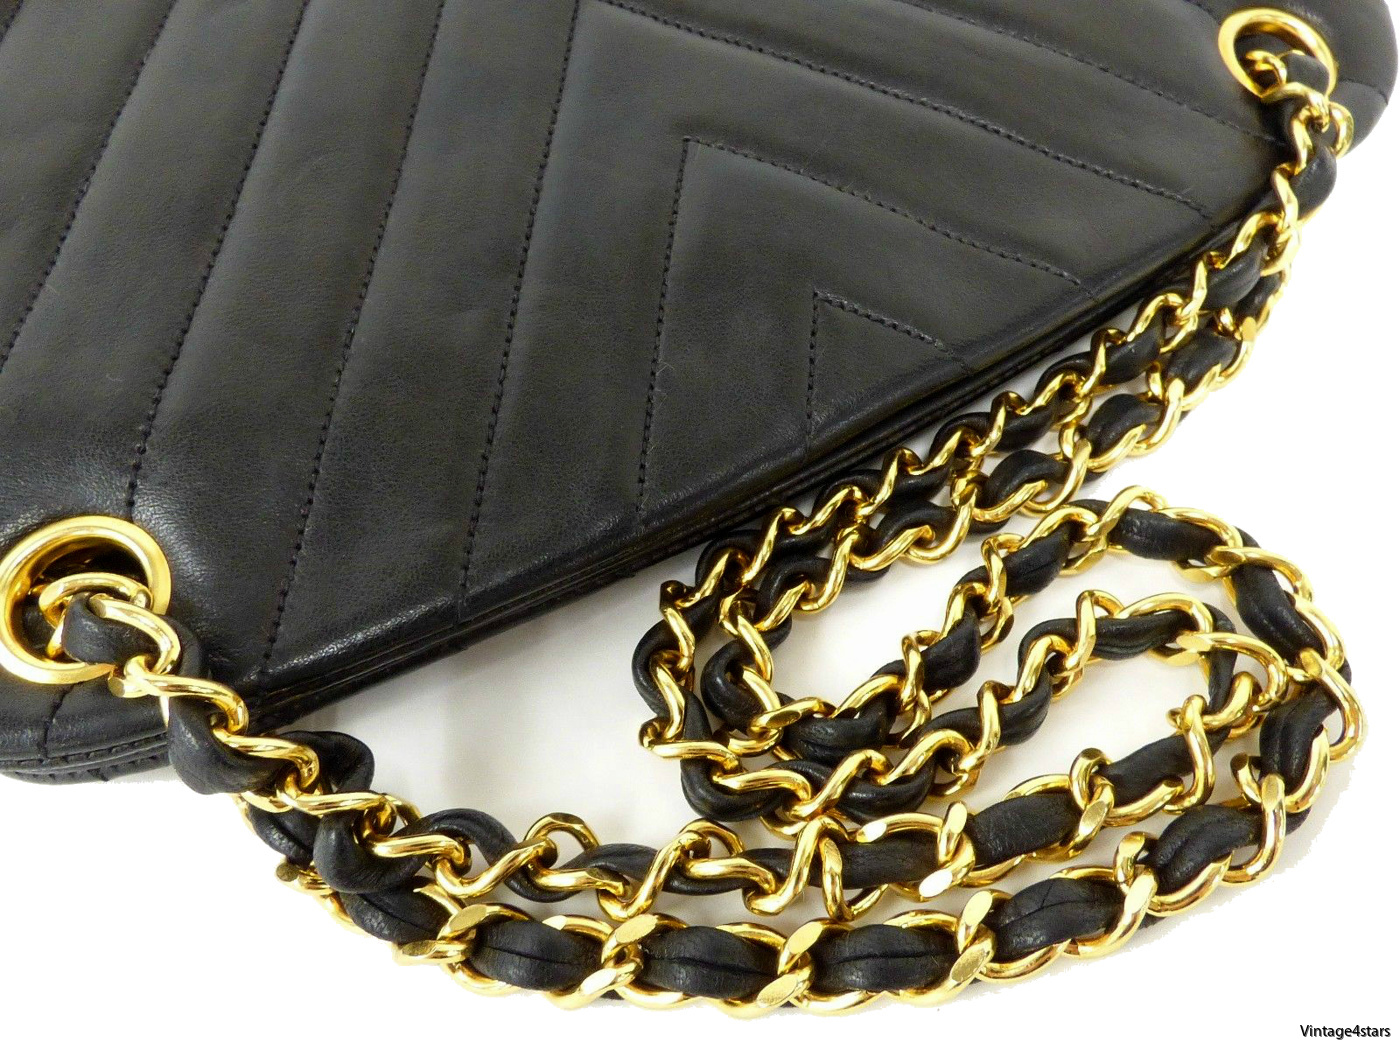 Chanel Shoulder Bag Chevron 4